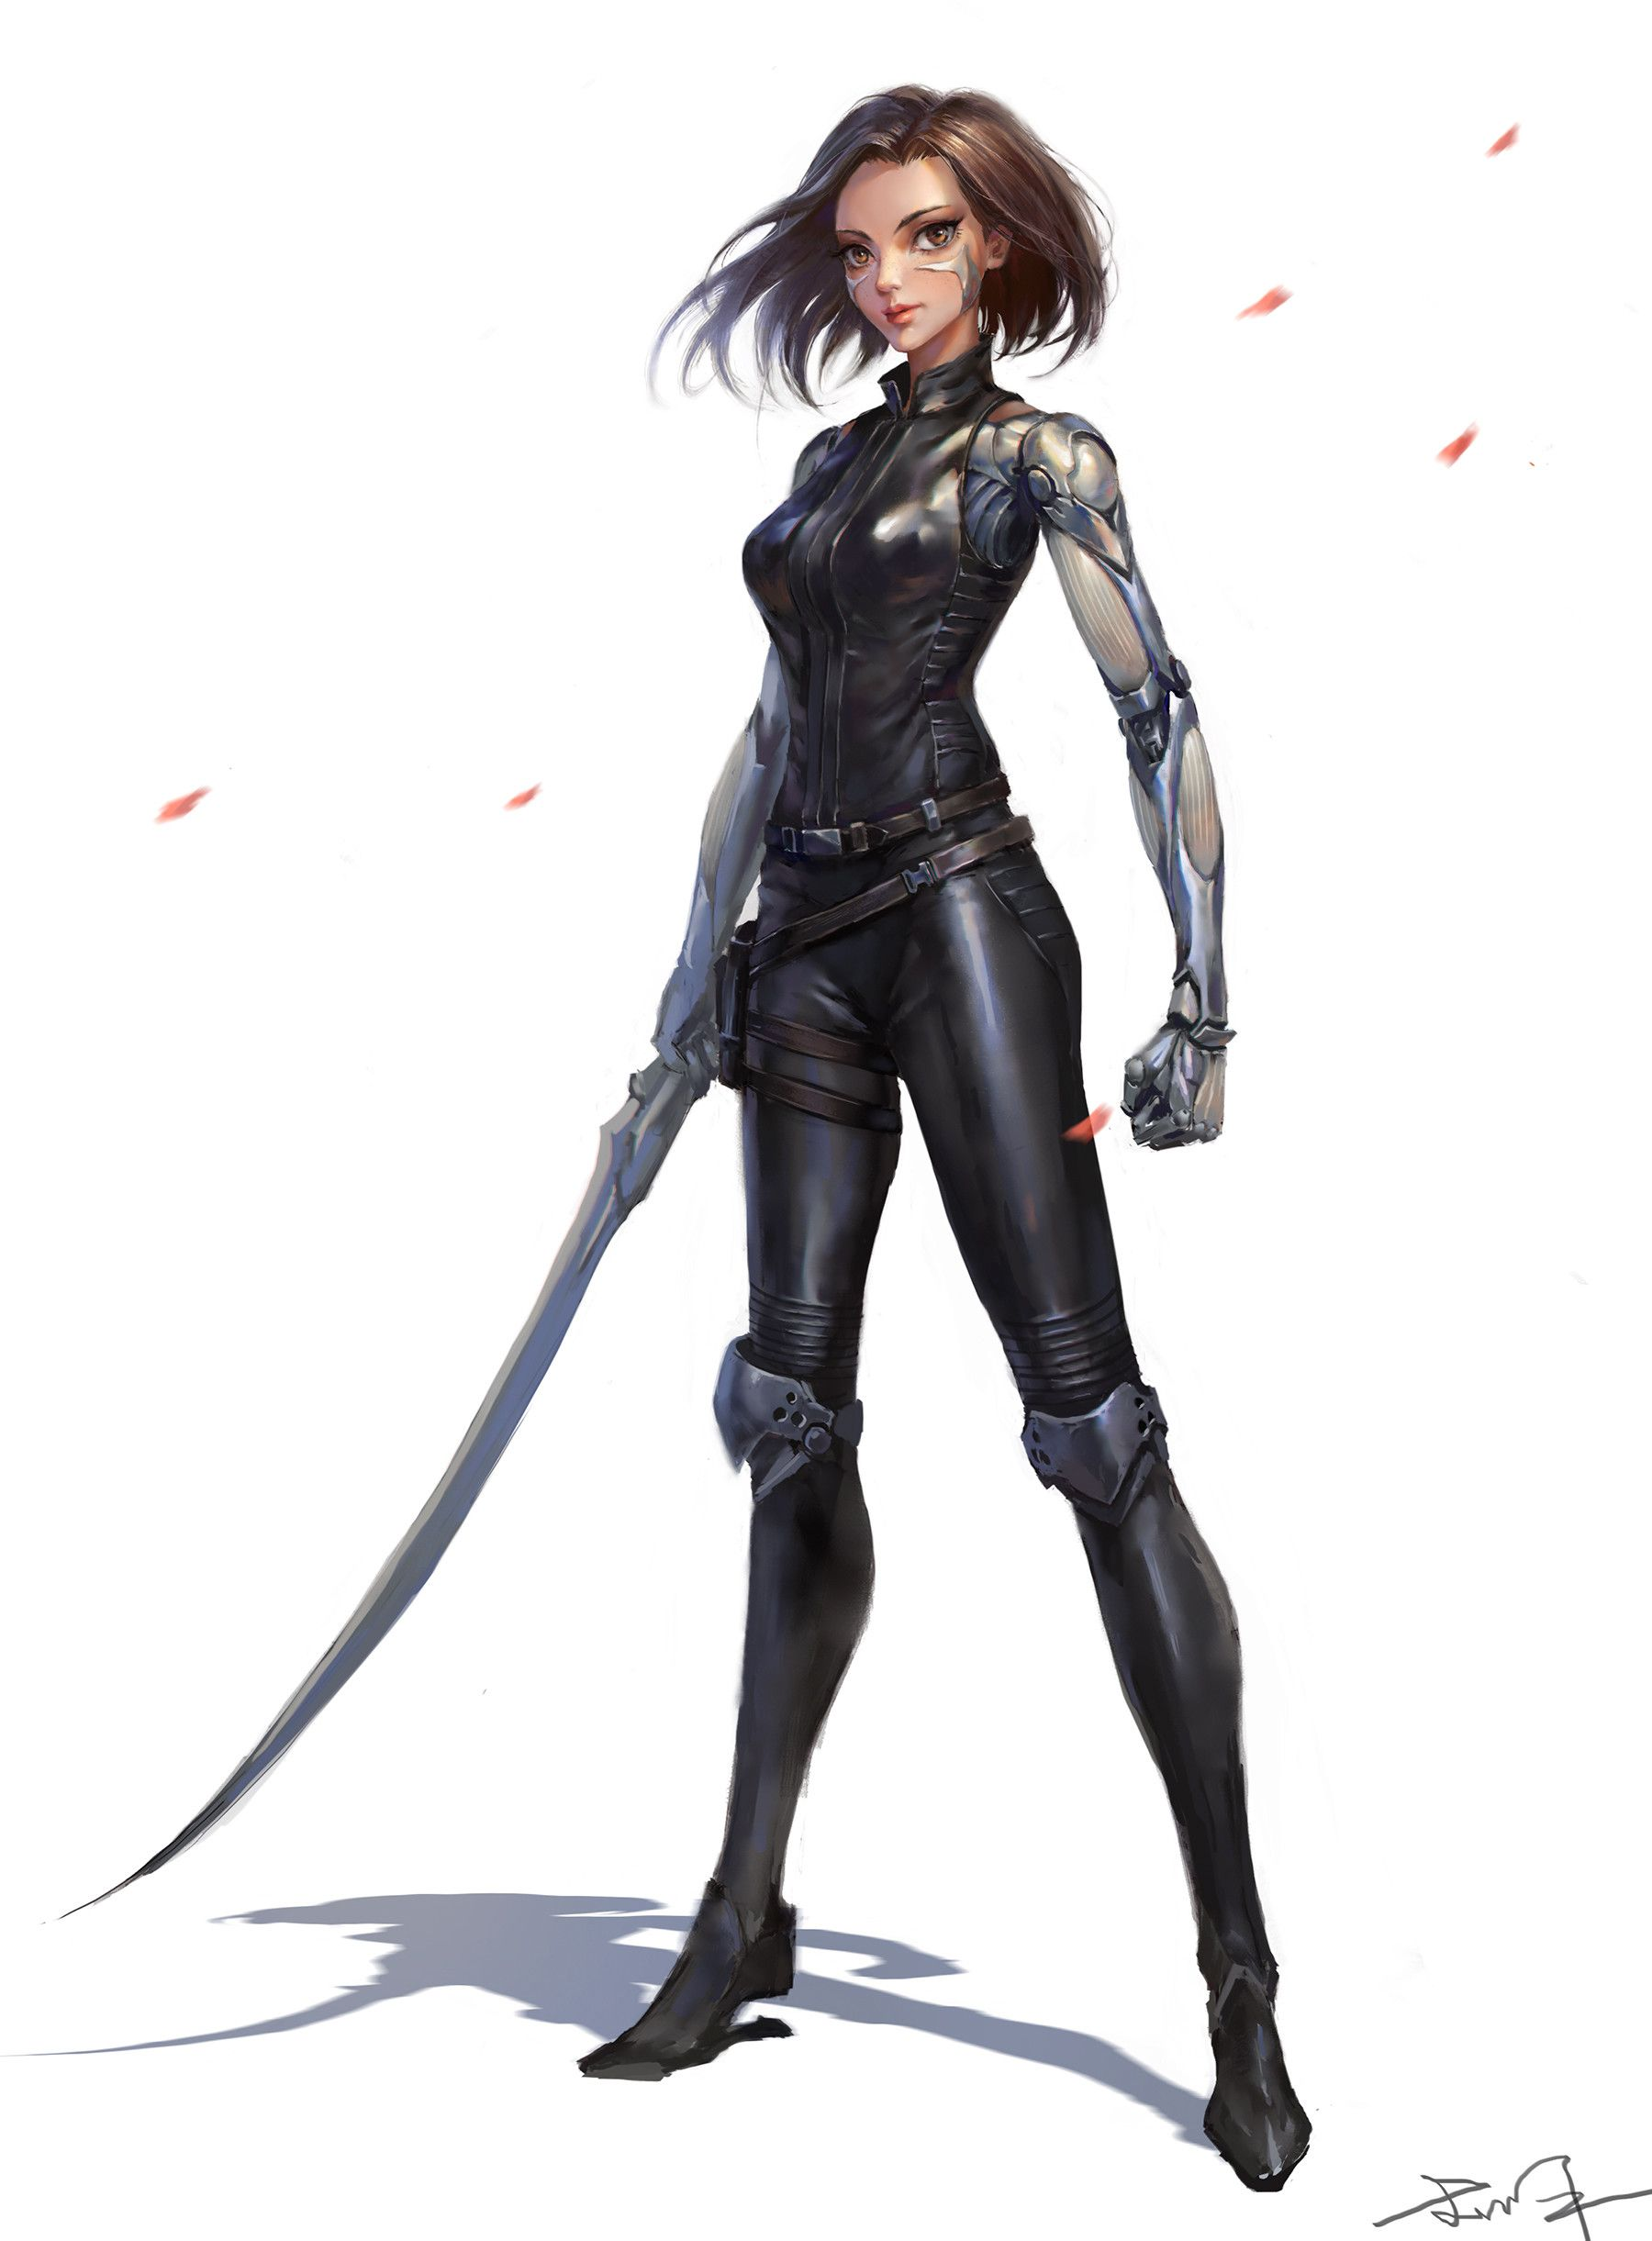 Pin by Smith Smithy on character art Alita battle angel